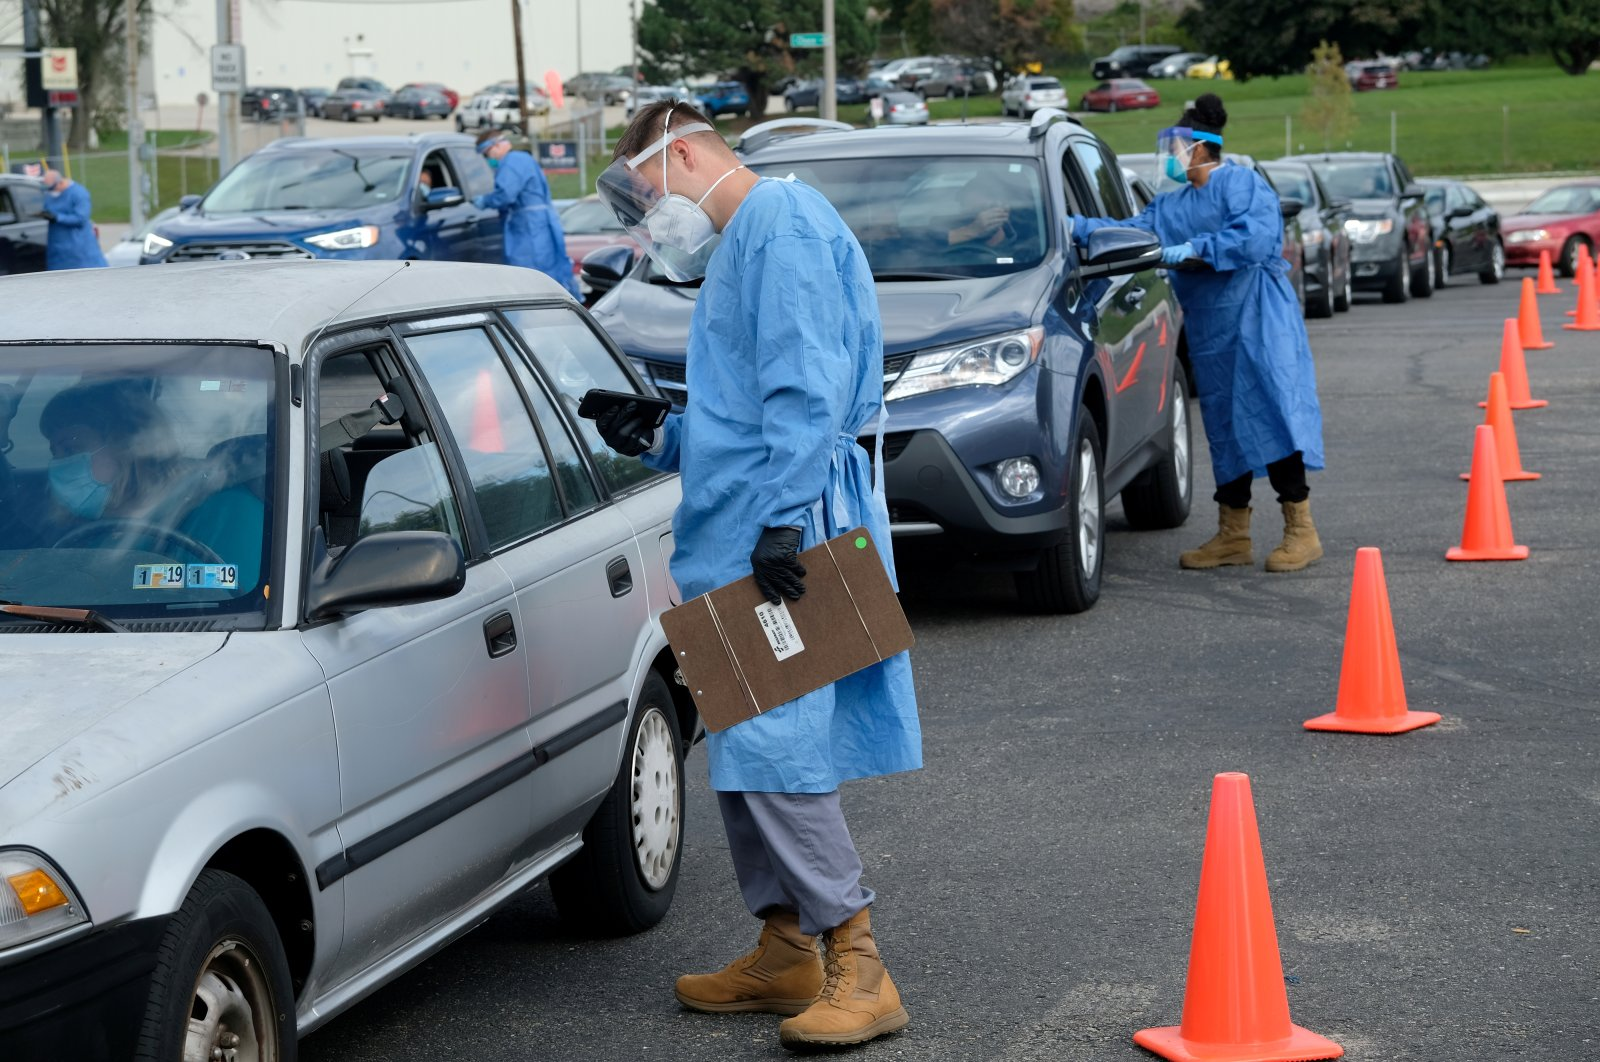 People line up in their vehicles to undergo COVID-19 tests, Milwaukee, Wisconsin, U.S., Oct. 2, 2020. (REUTERS Photo)